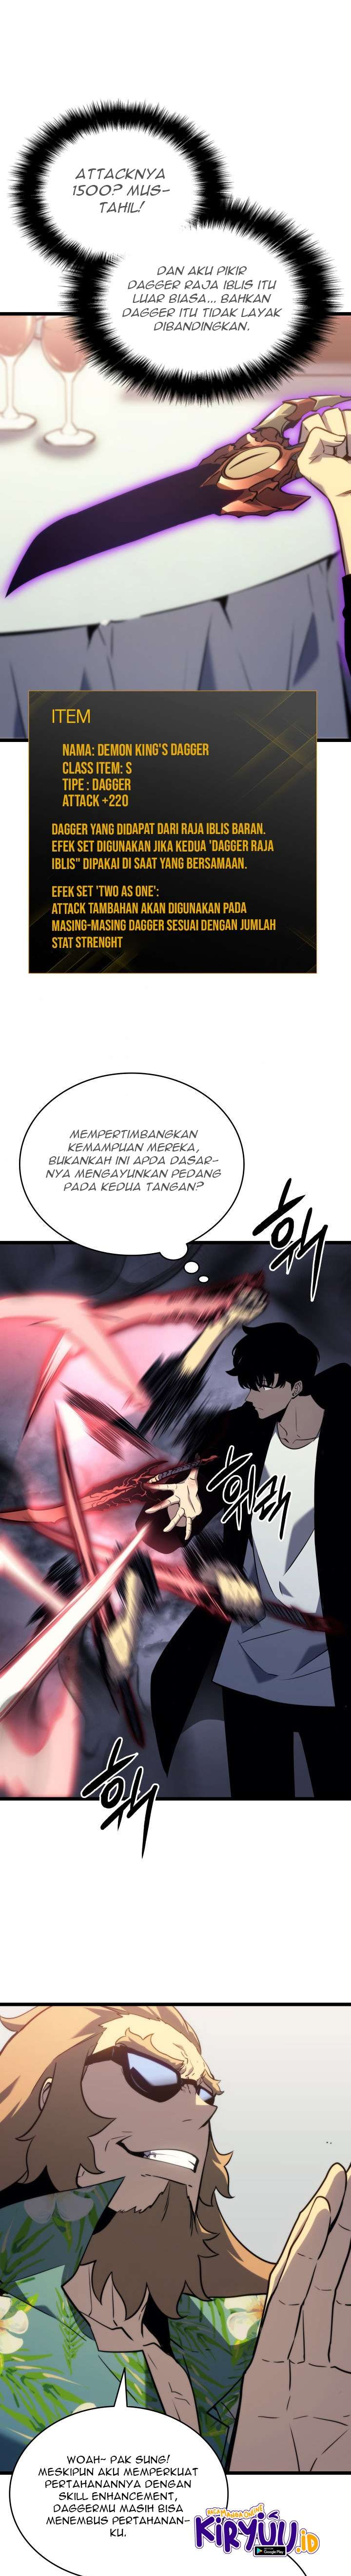 Solo Leveling Chapter 153 Bahasa Indonesia page 43